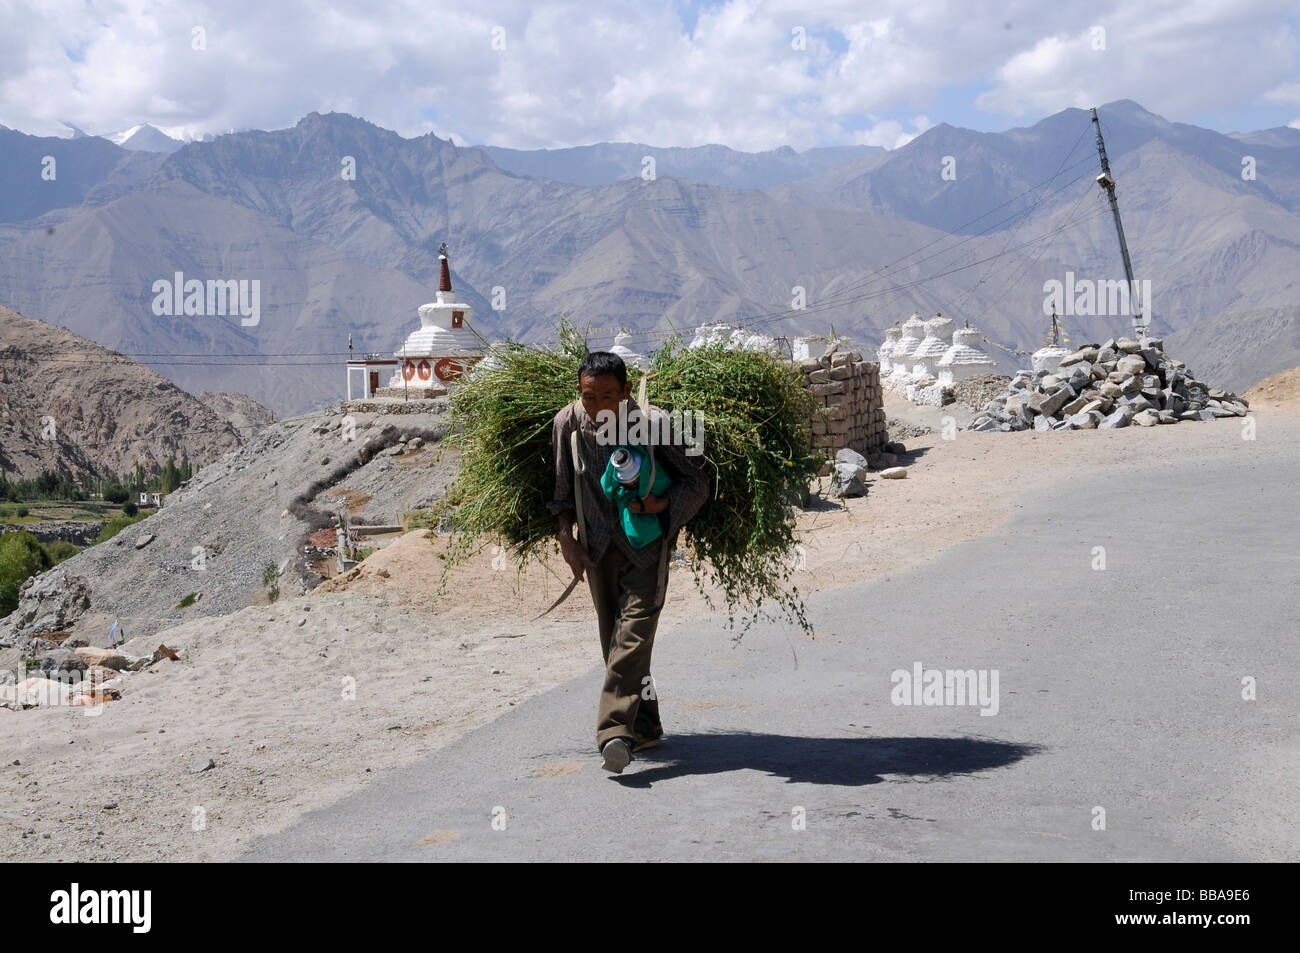 Farmer carrying fodder for winter storage to the village on Phiyang Monastery, Ladakh, India, Himalayas, Asia - Stock Image